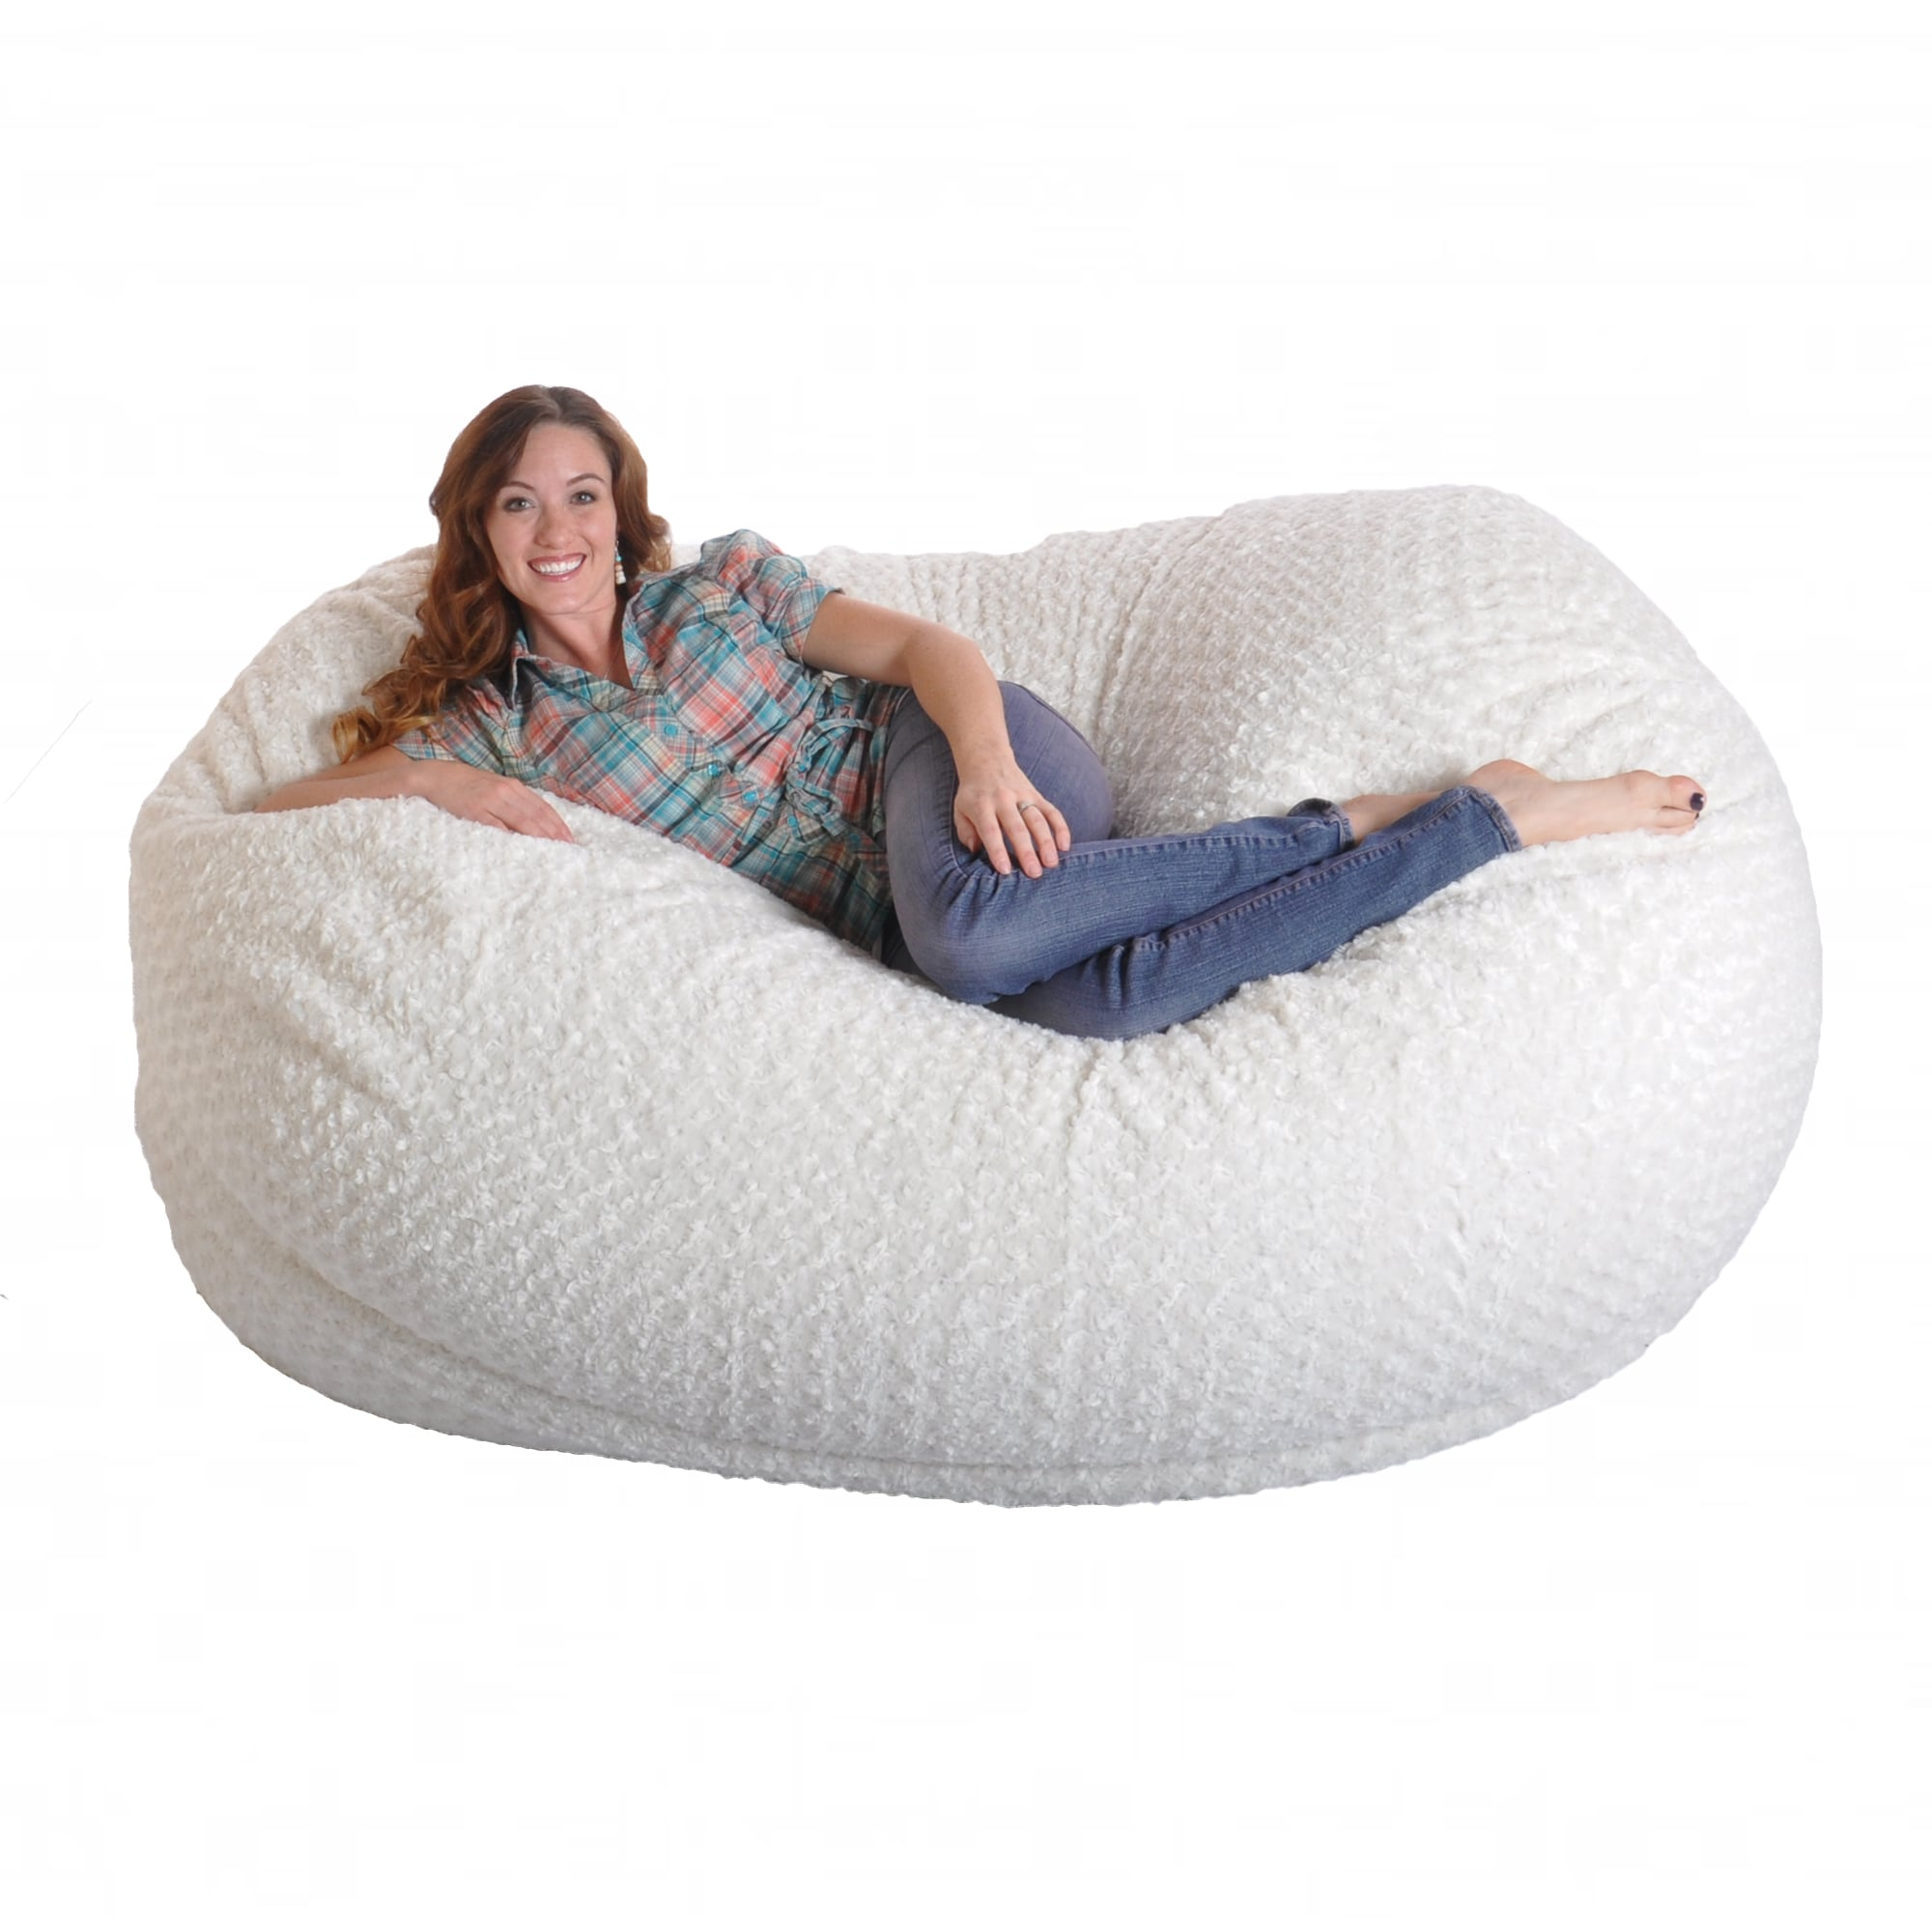 6 Foot Soft White Fur Large Oval Microfiber Memory Foam Bean Bag Chair Free Shipping Today 8502975